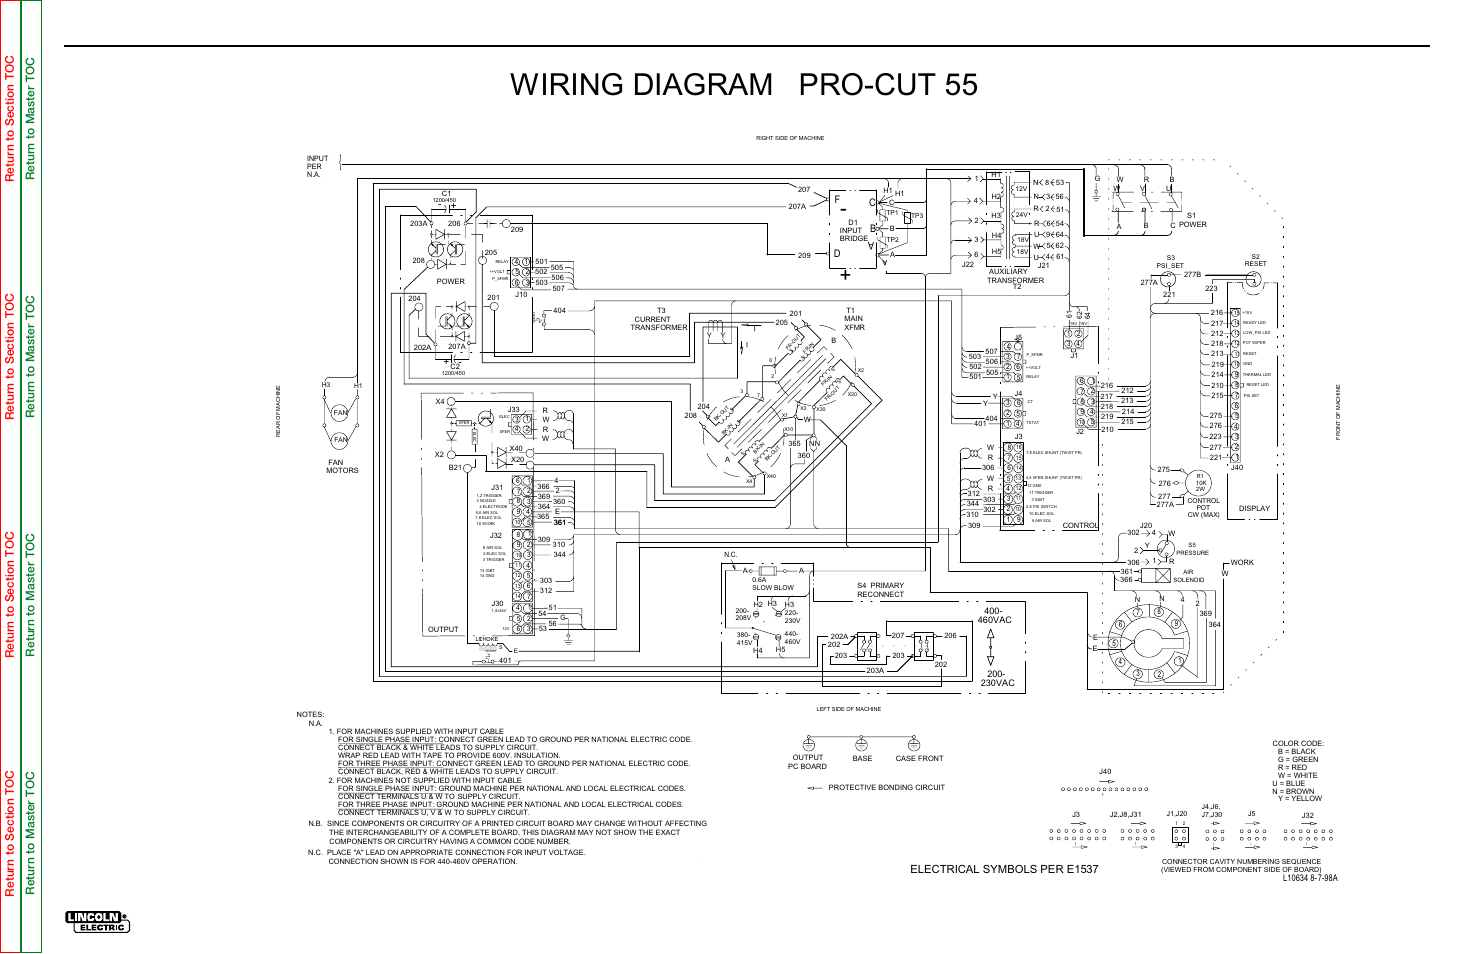 hight resolution of wiring diagram pro cut 55 electrical diagrams wiring diagramwiring diagram pro cut 55